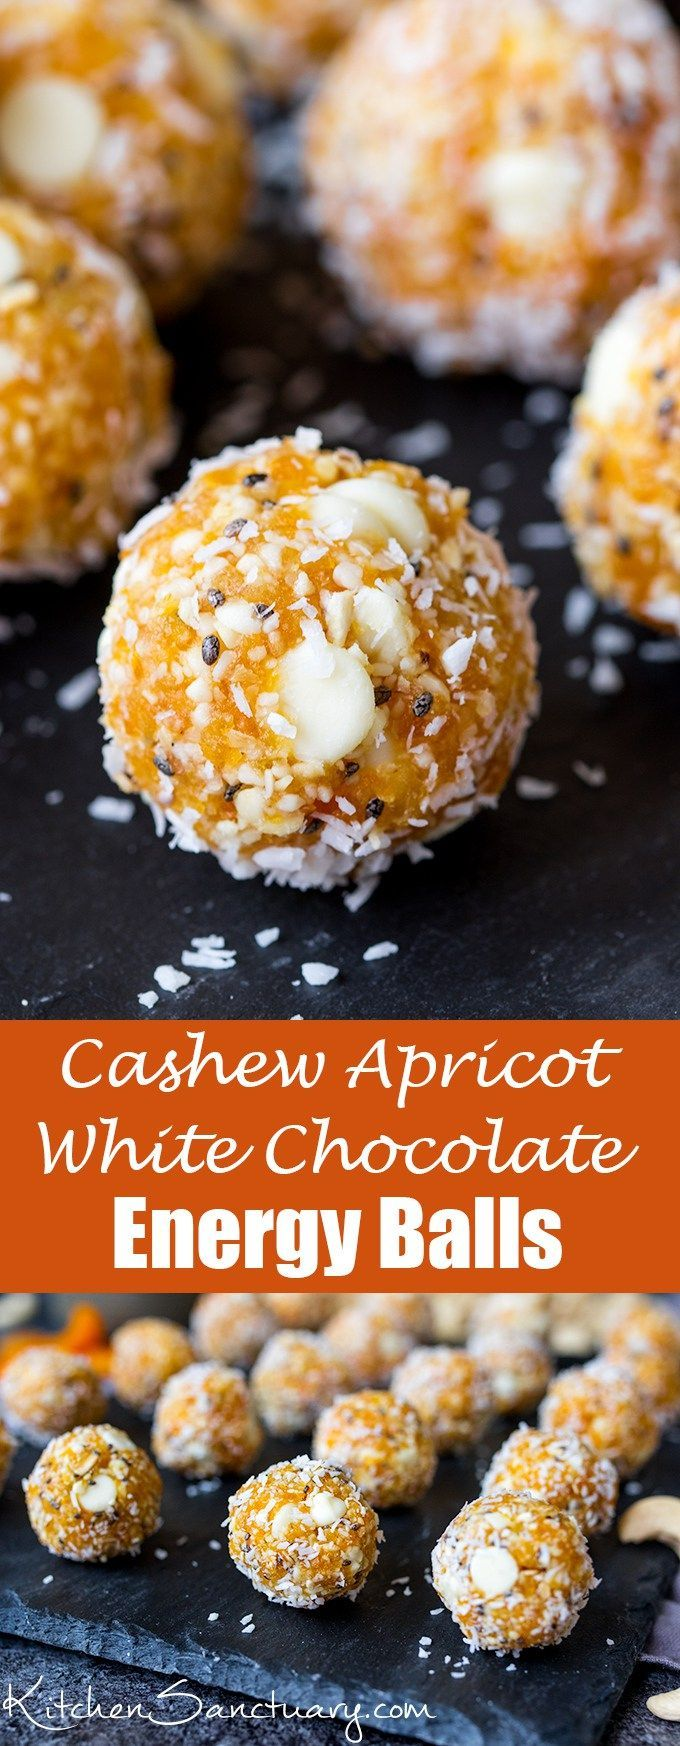 Cashew Apricot White Chocolate Energy Balls - A healthier way to combat that afternoon energy dip!  #energyballs #energybites #apricot #glutenfreesnack #snacktime